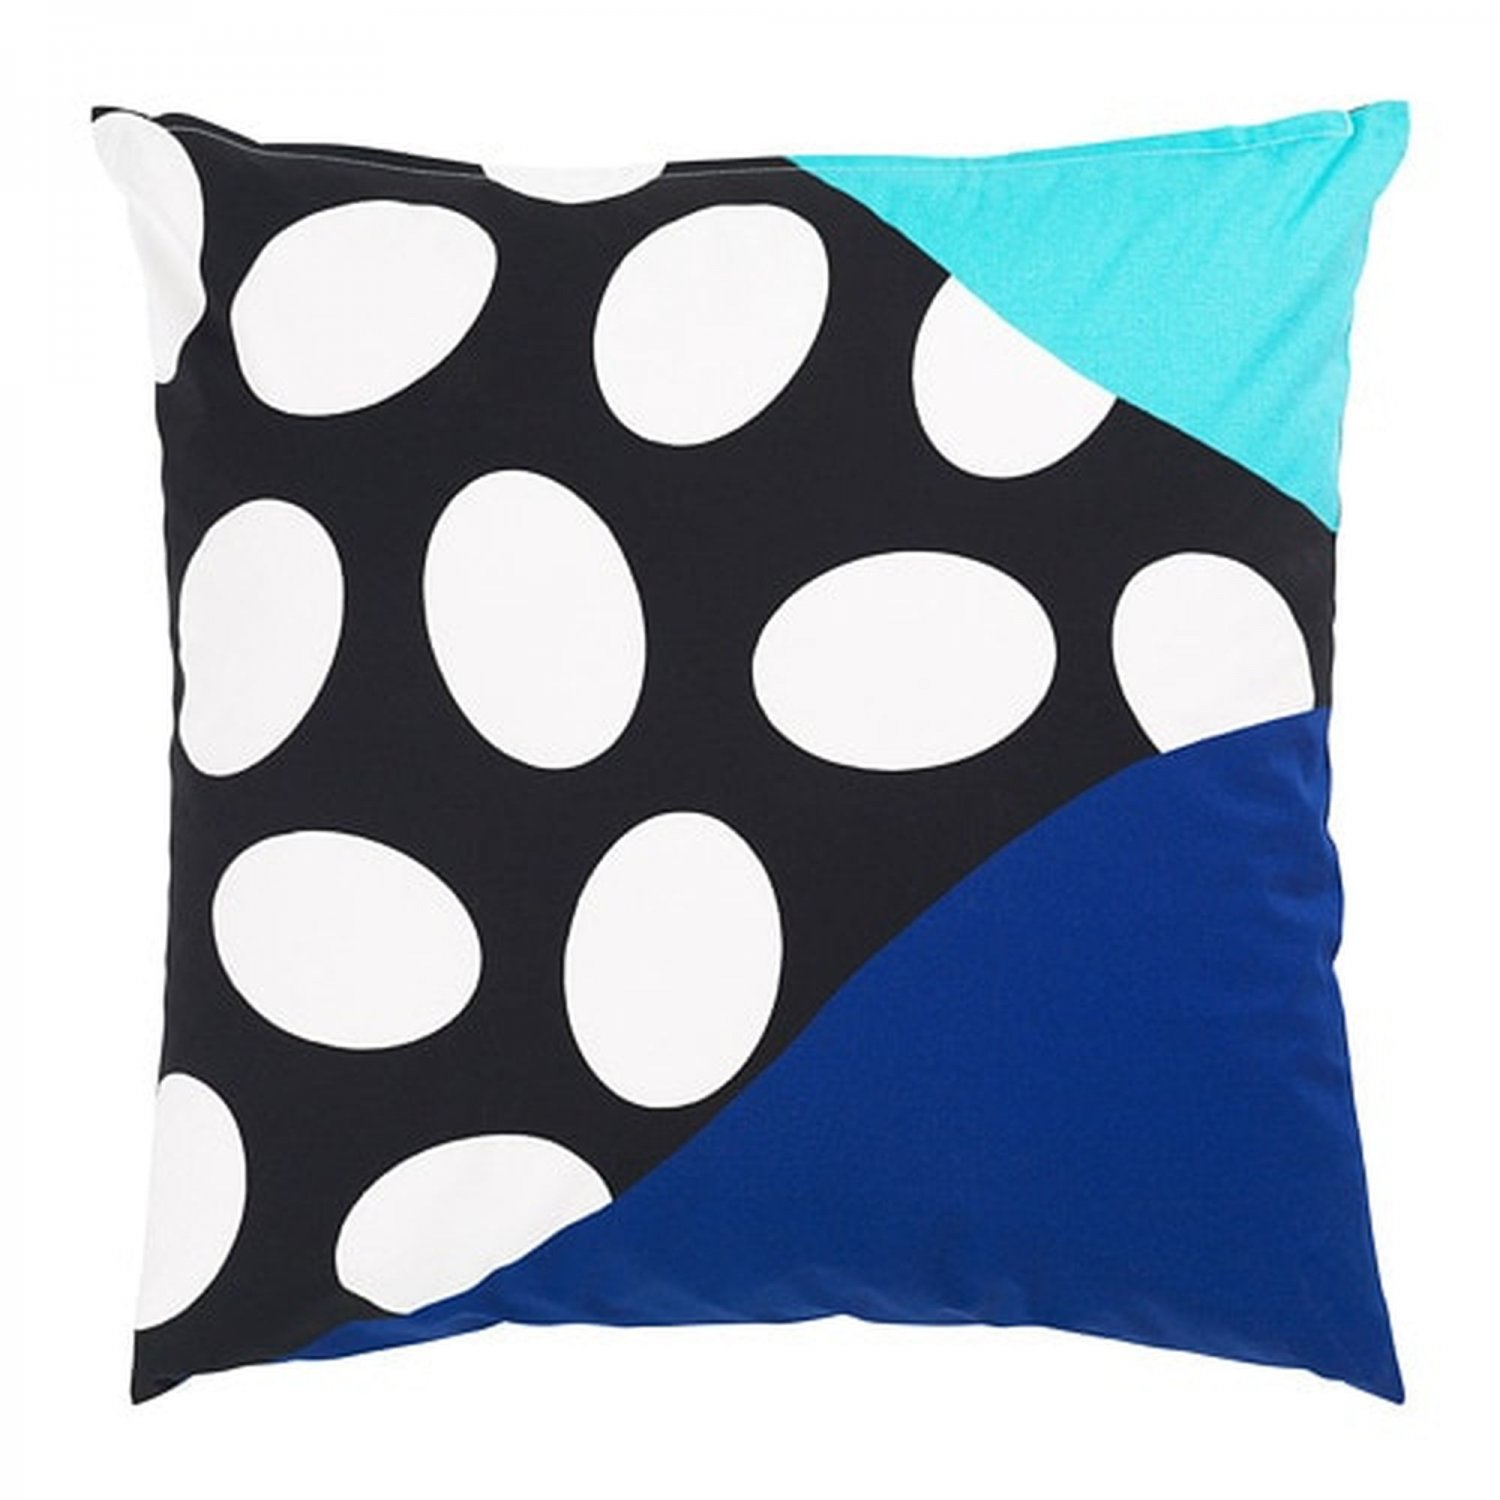 "IKEA Mosaikblad Cushion COVER Pillow Sham  20"" x 20"" Retro Blue Black Turquoise Limited Edition"